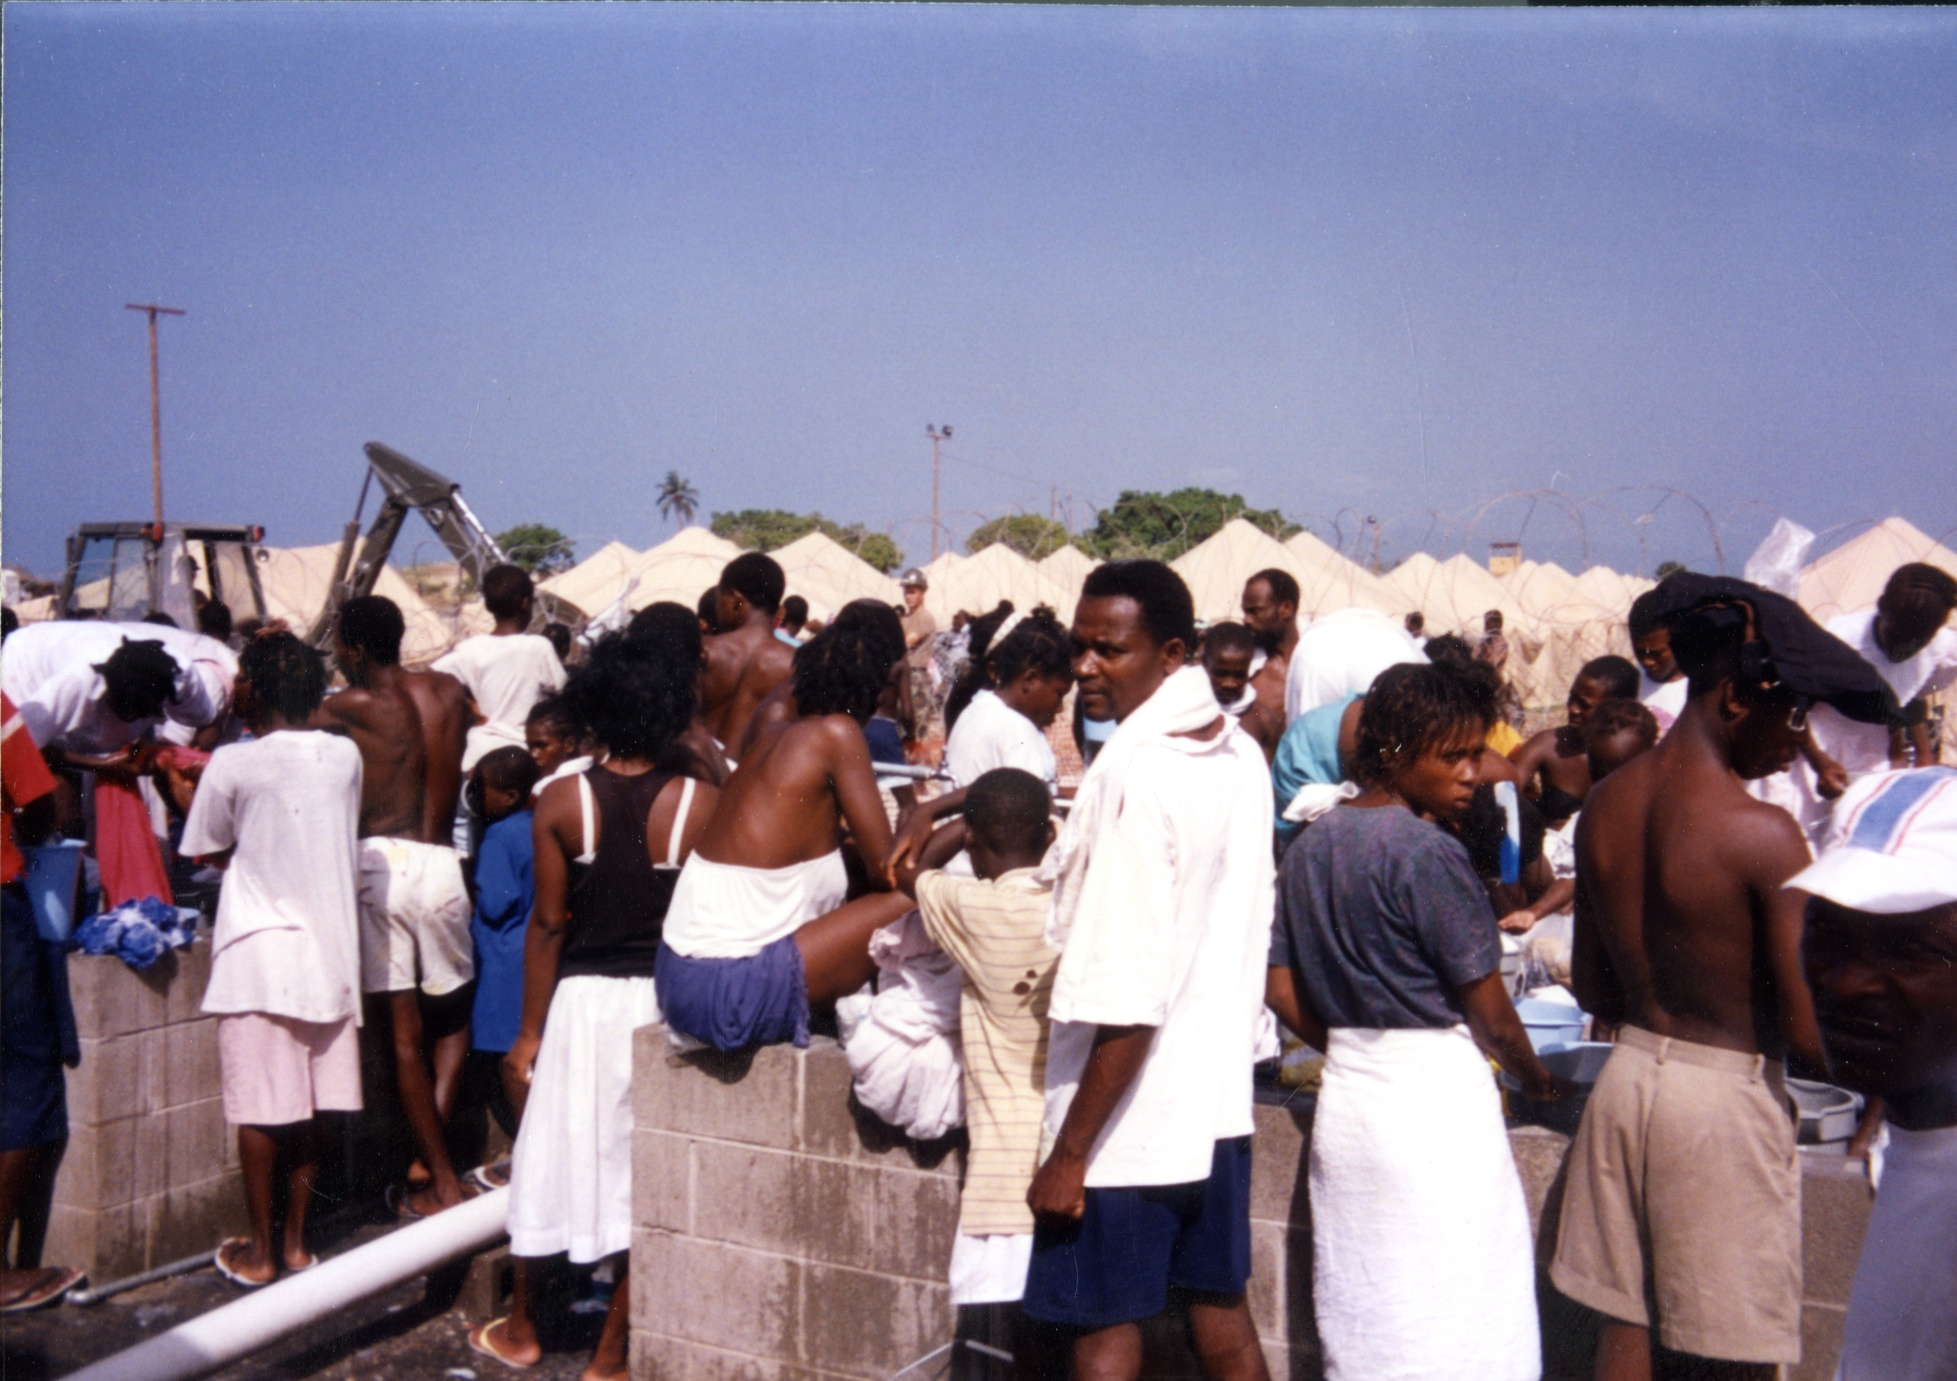 The Haitians and HIV Thumbnail Image